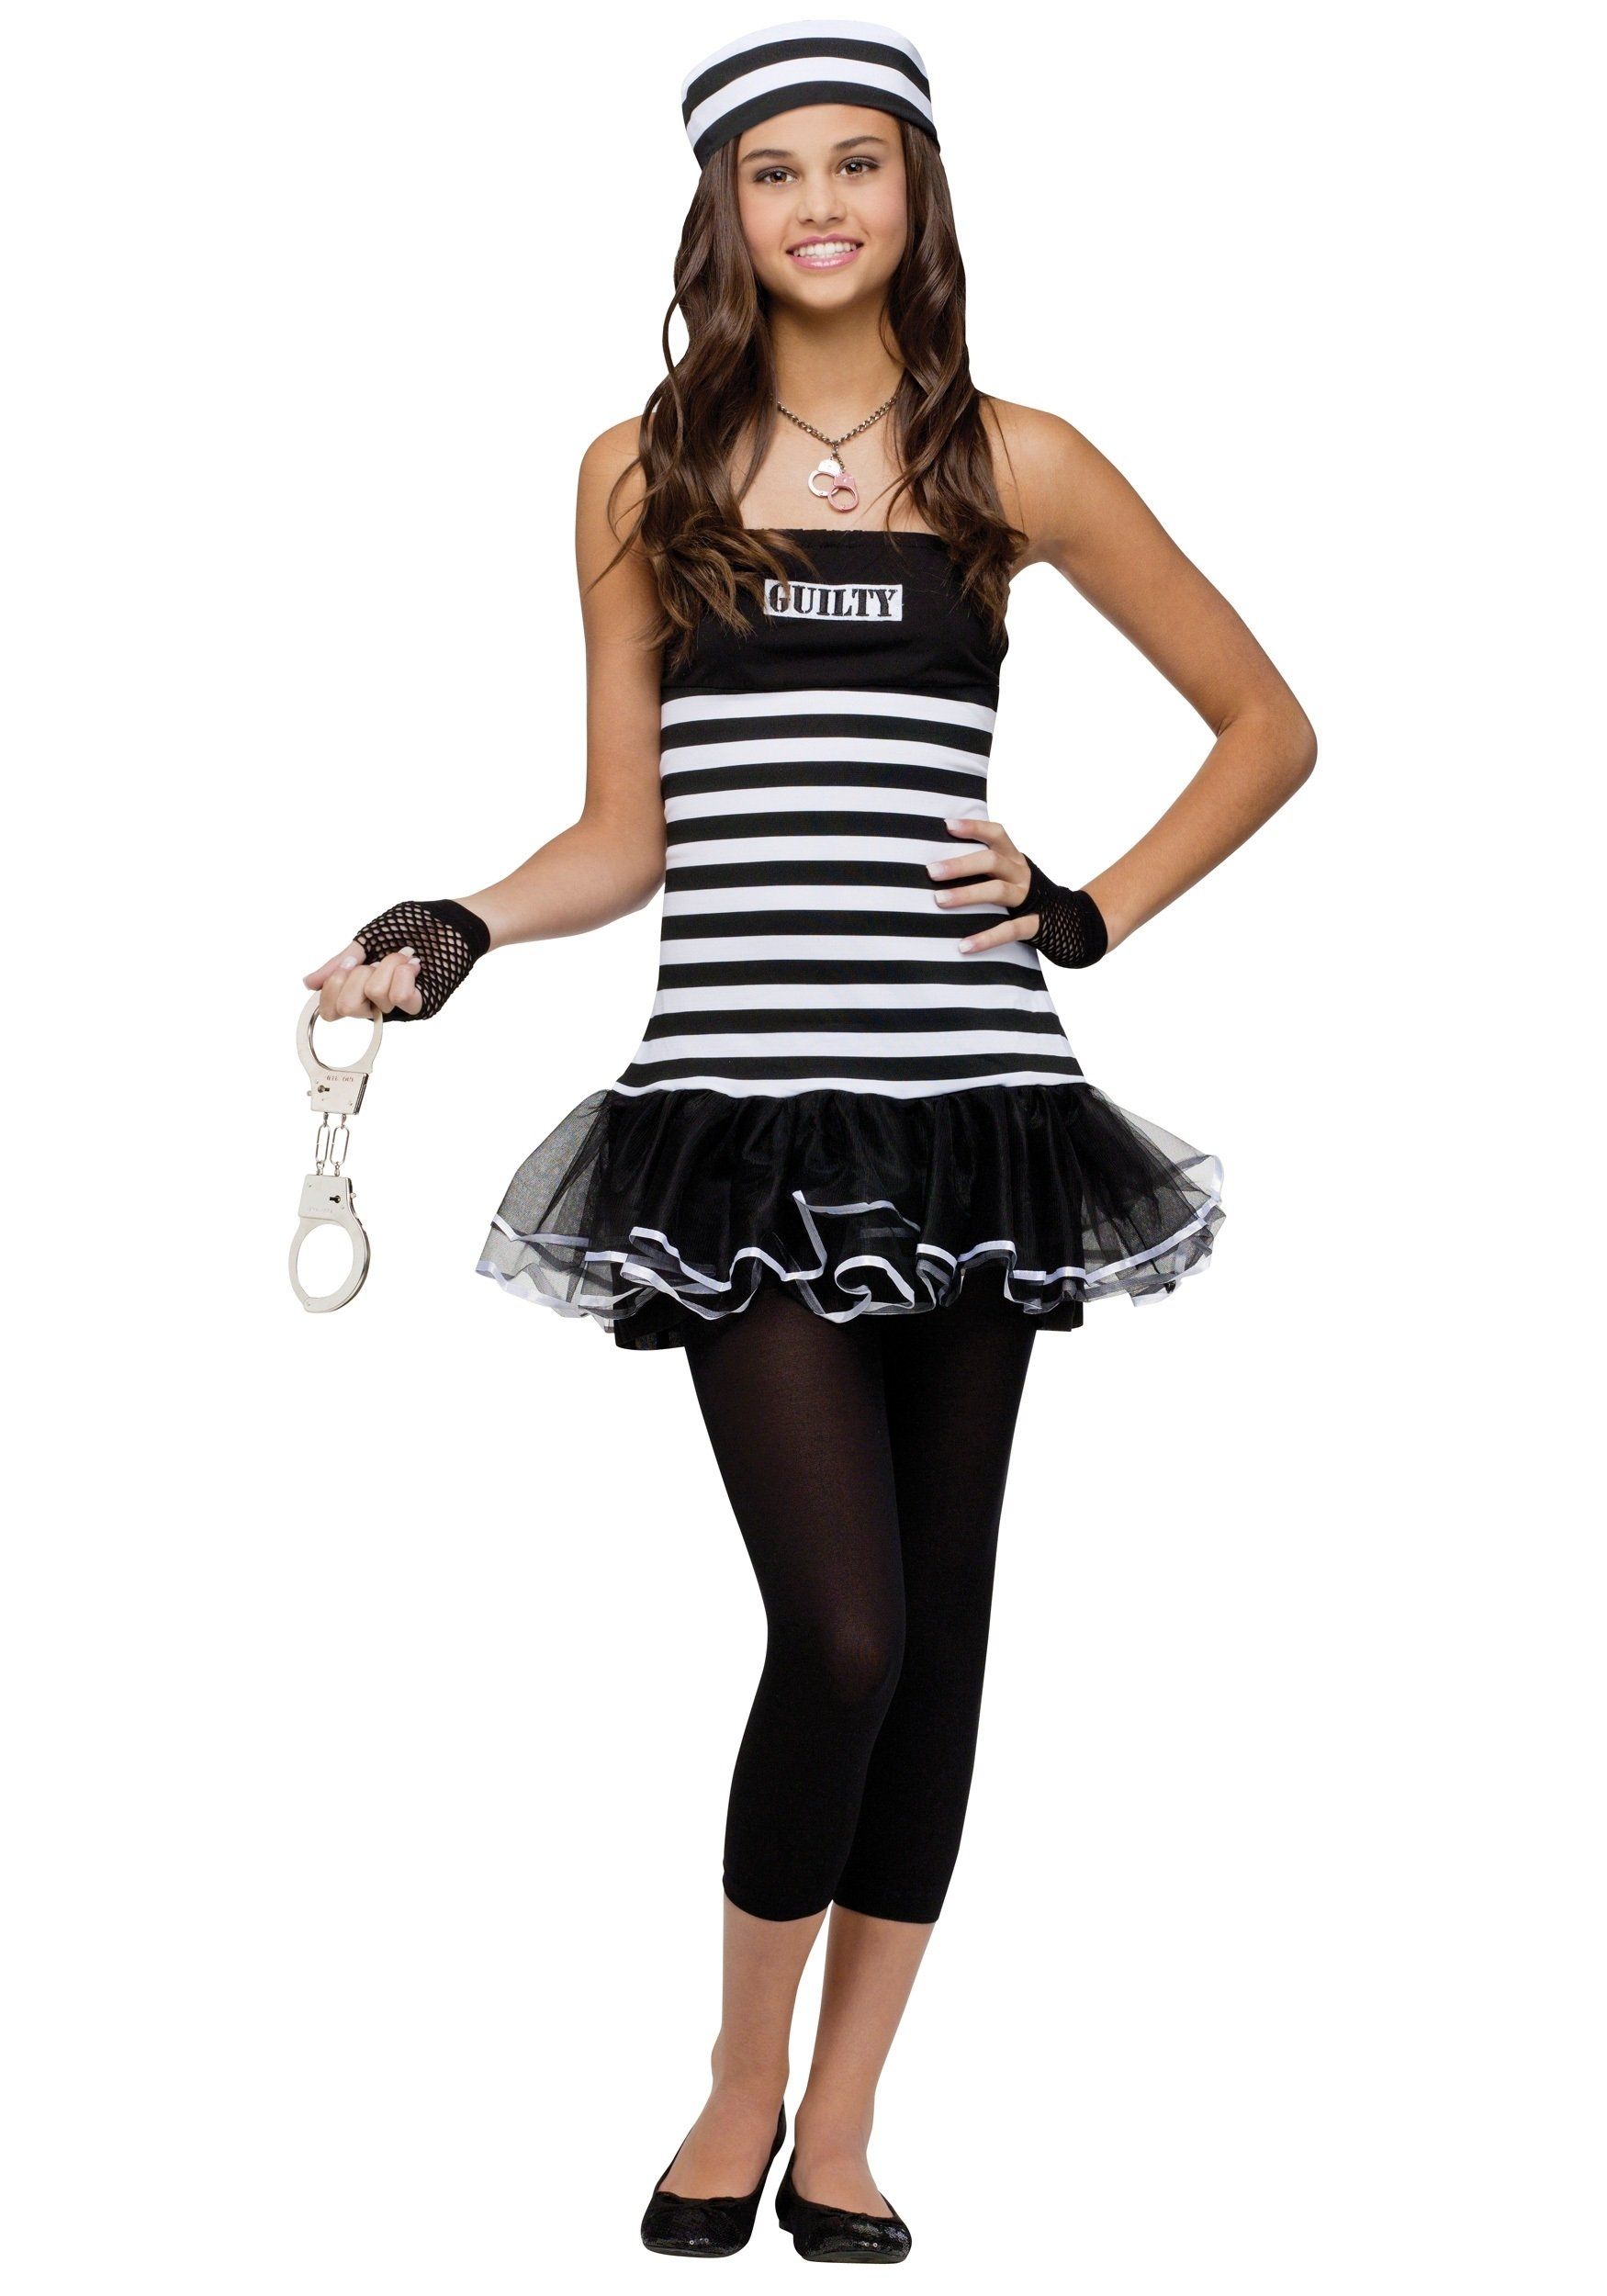 10 Perfect Cute Teen Halloween Costume Ideas teen guilty prisoner costume 2021